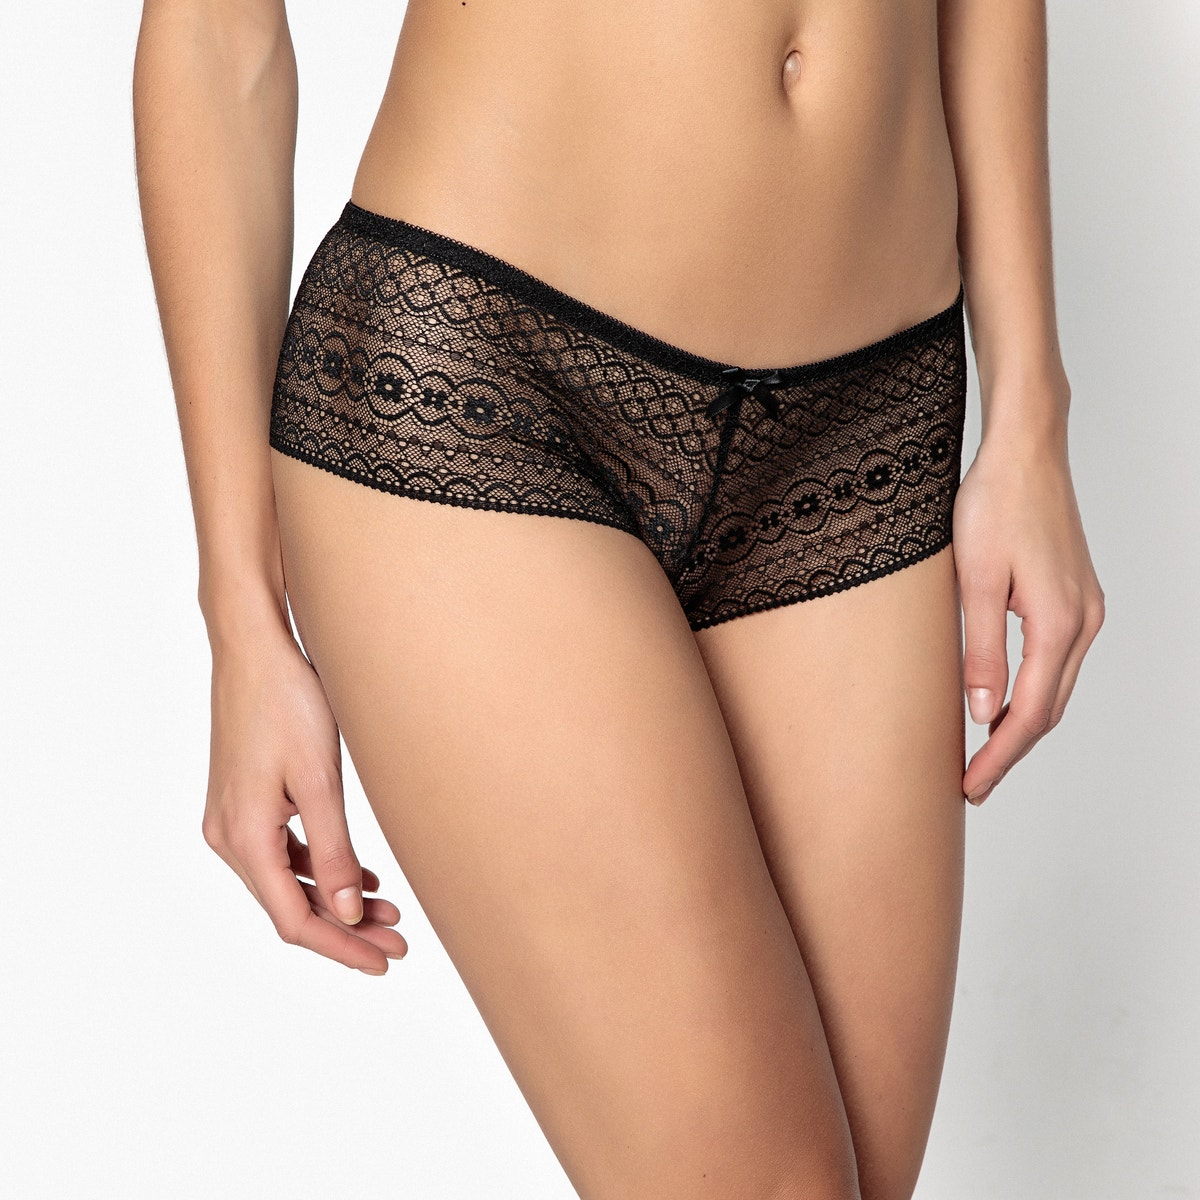 Lace Knickers | Lace Panties | Lace Briefs